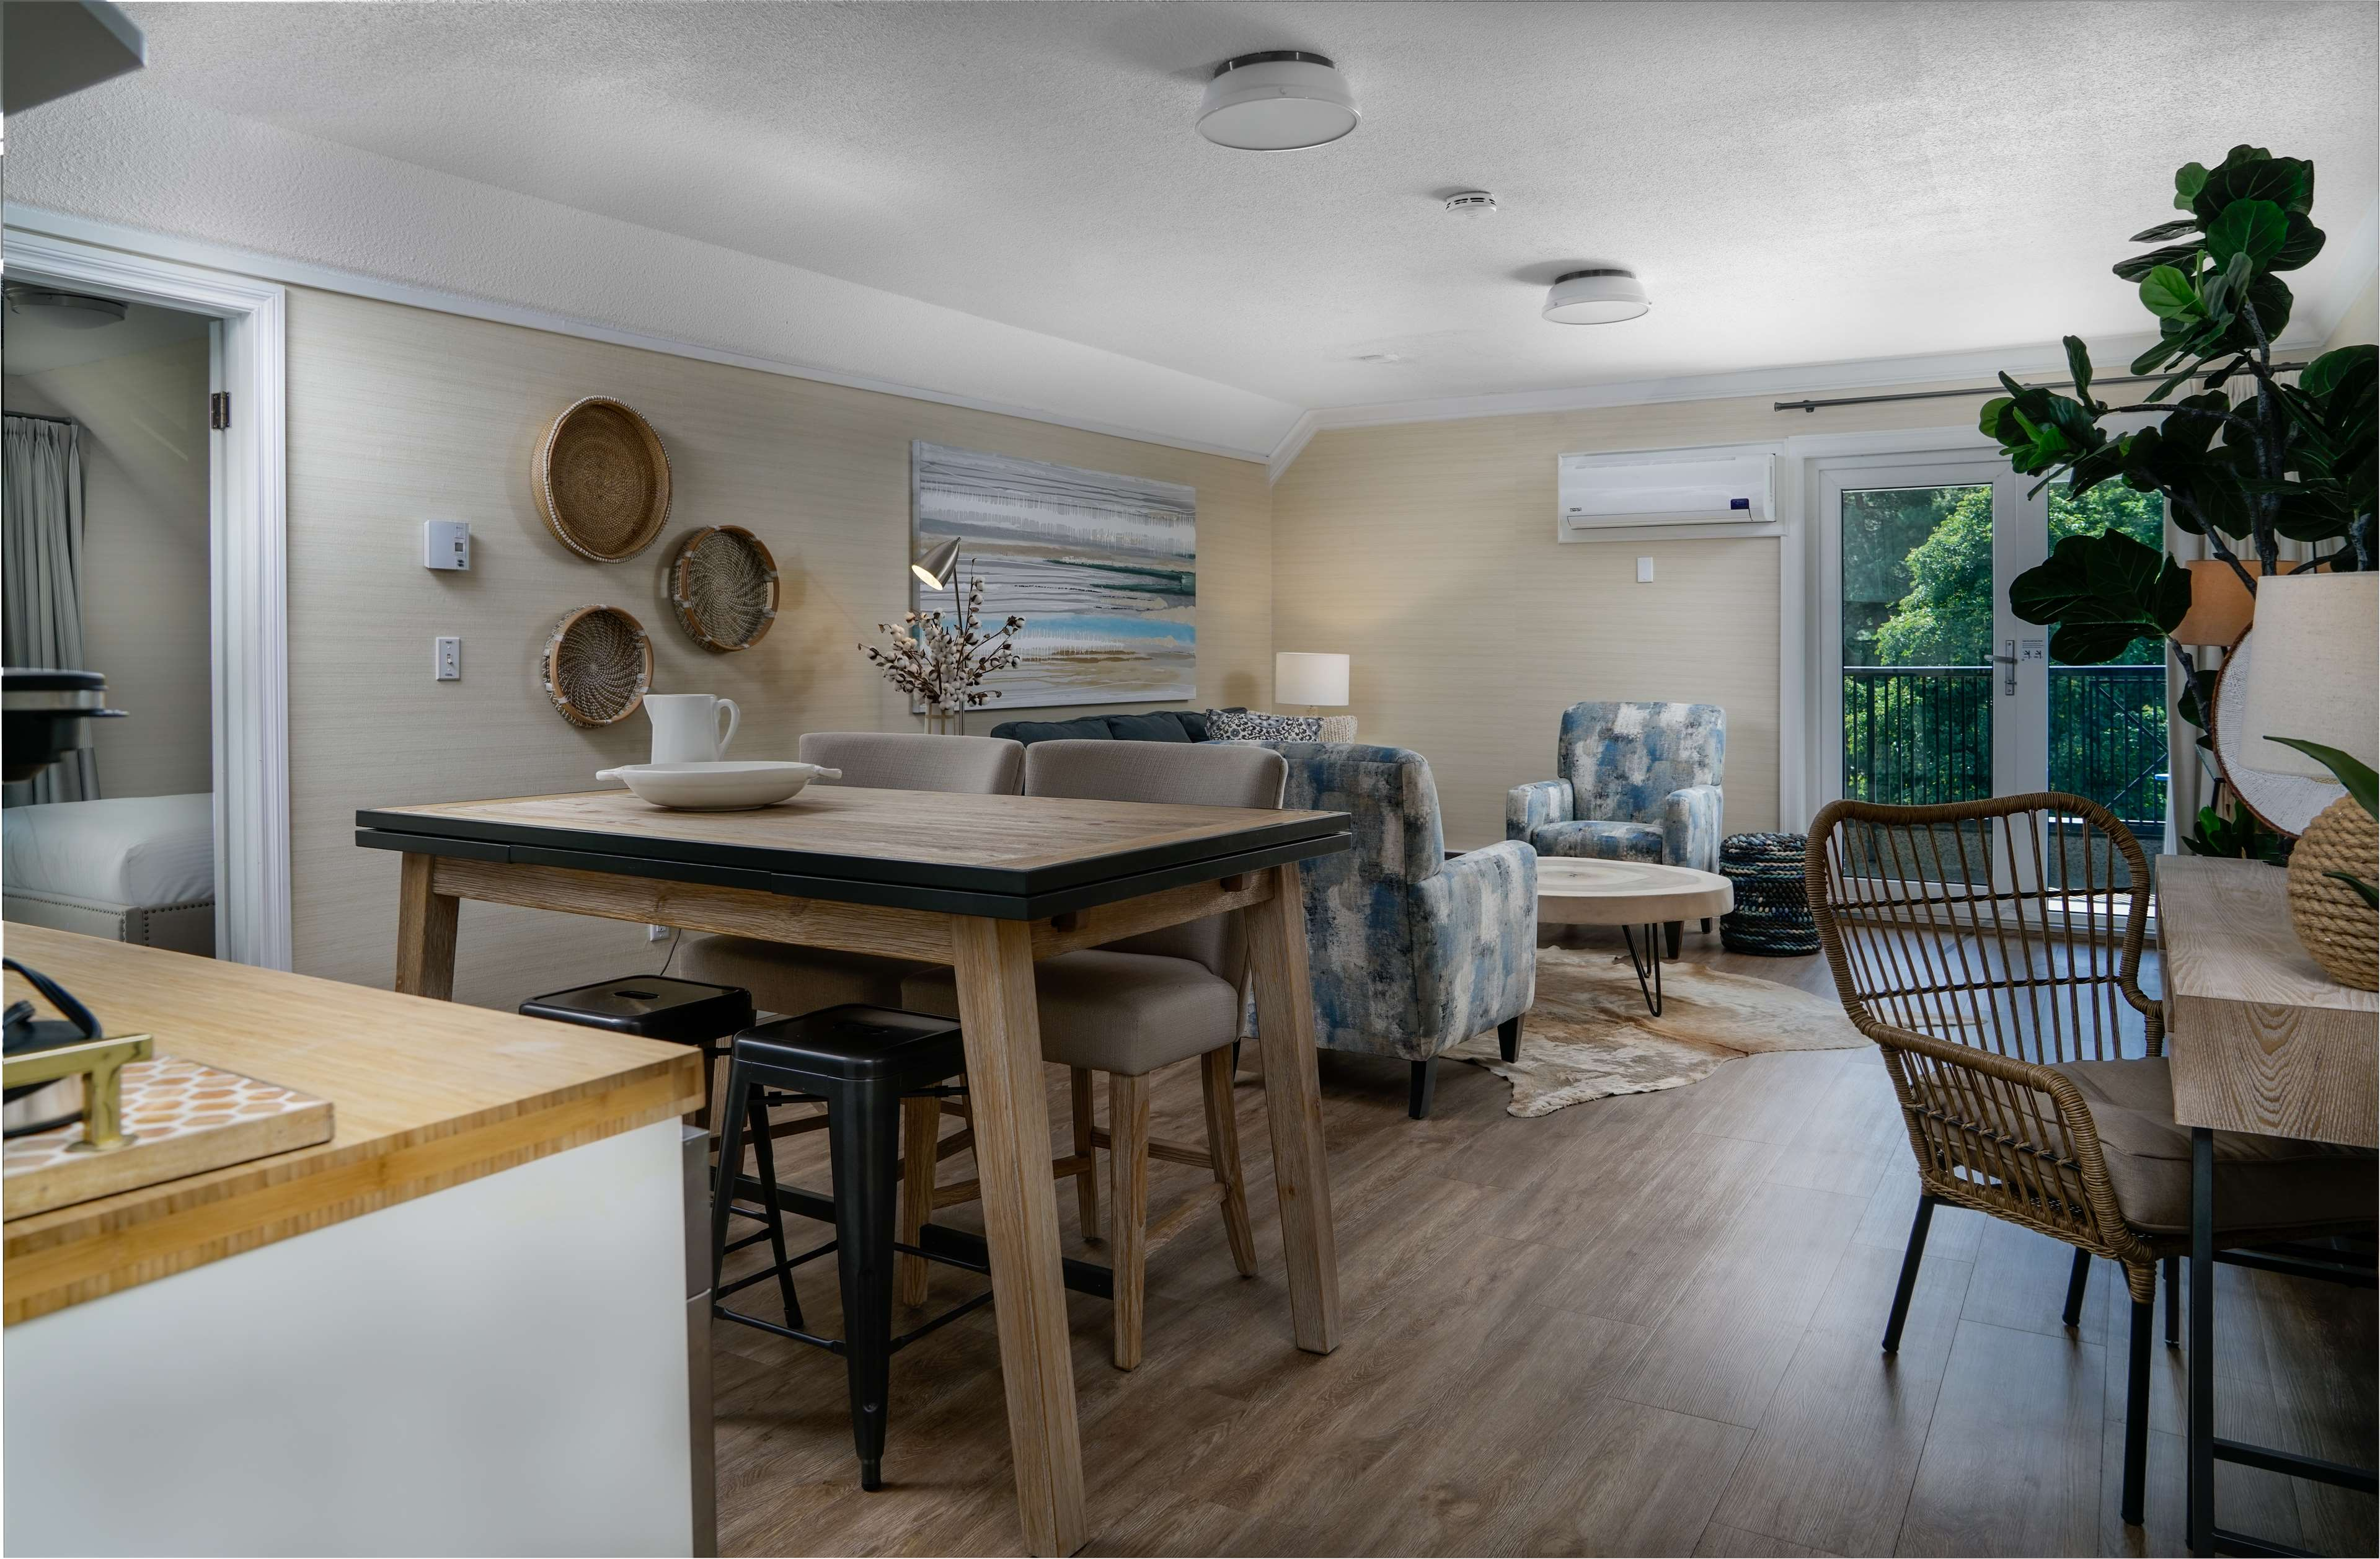 Prestige Beach House, BW Premier Collection in Kelowna: Executive Suite